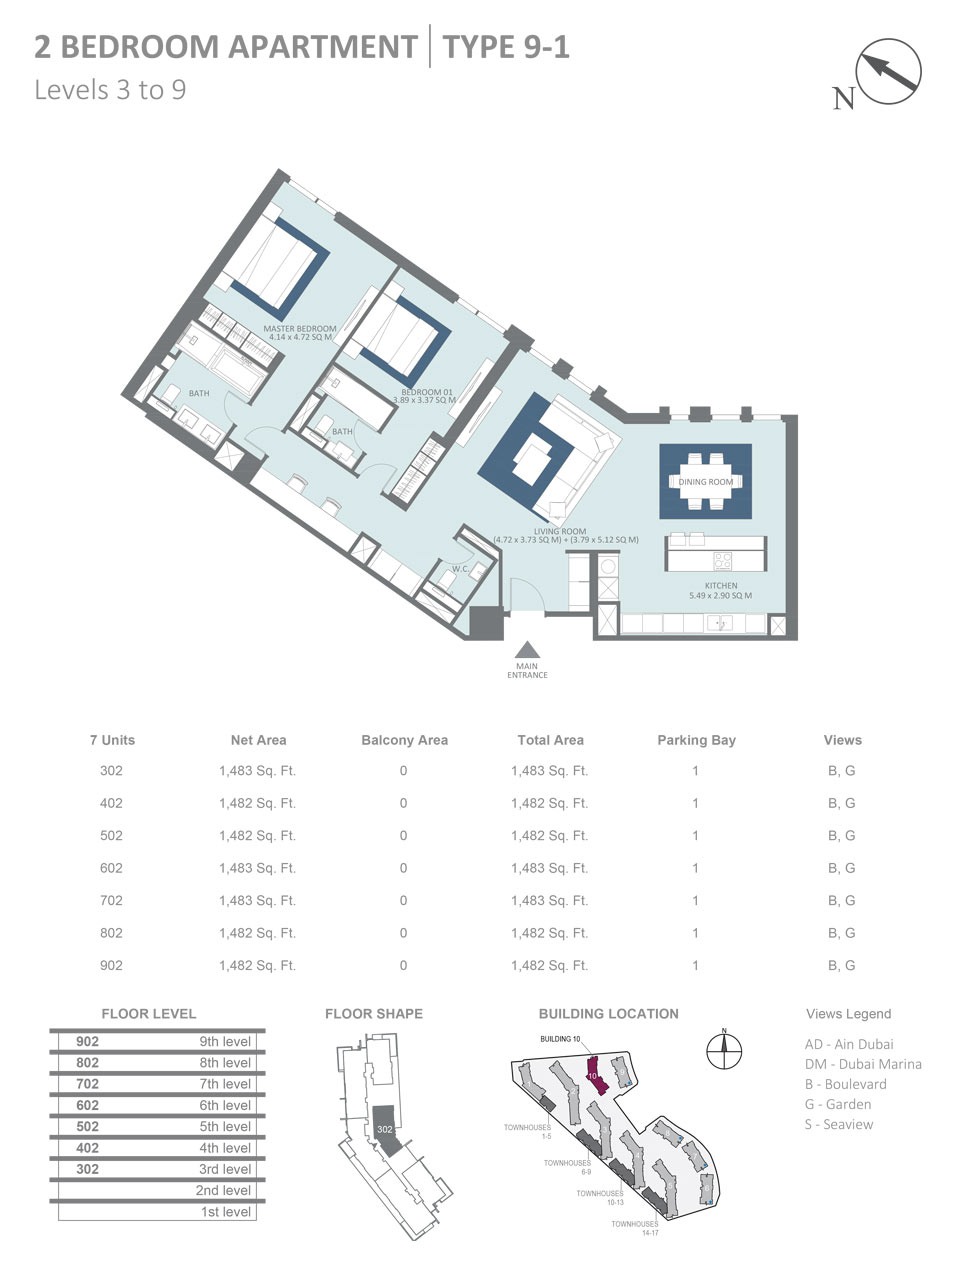 Building 10 - 2 Bedroom Apartment Type 9 - 1, Level 3 - 9, Size 1483  sq. ft.